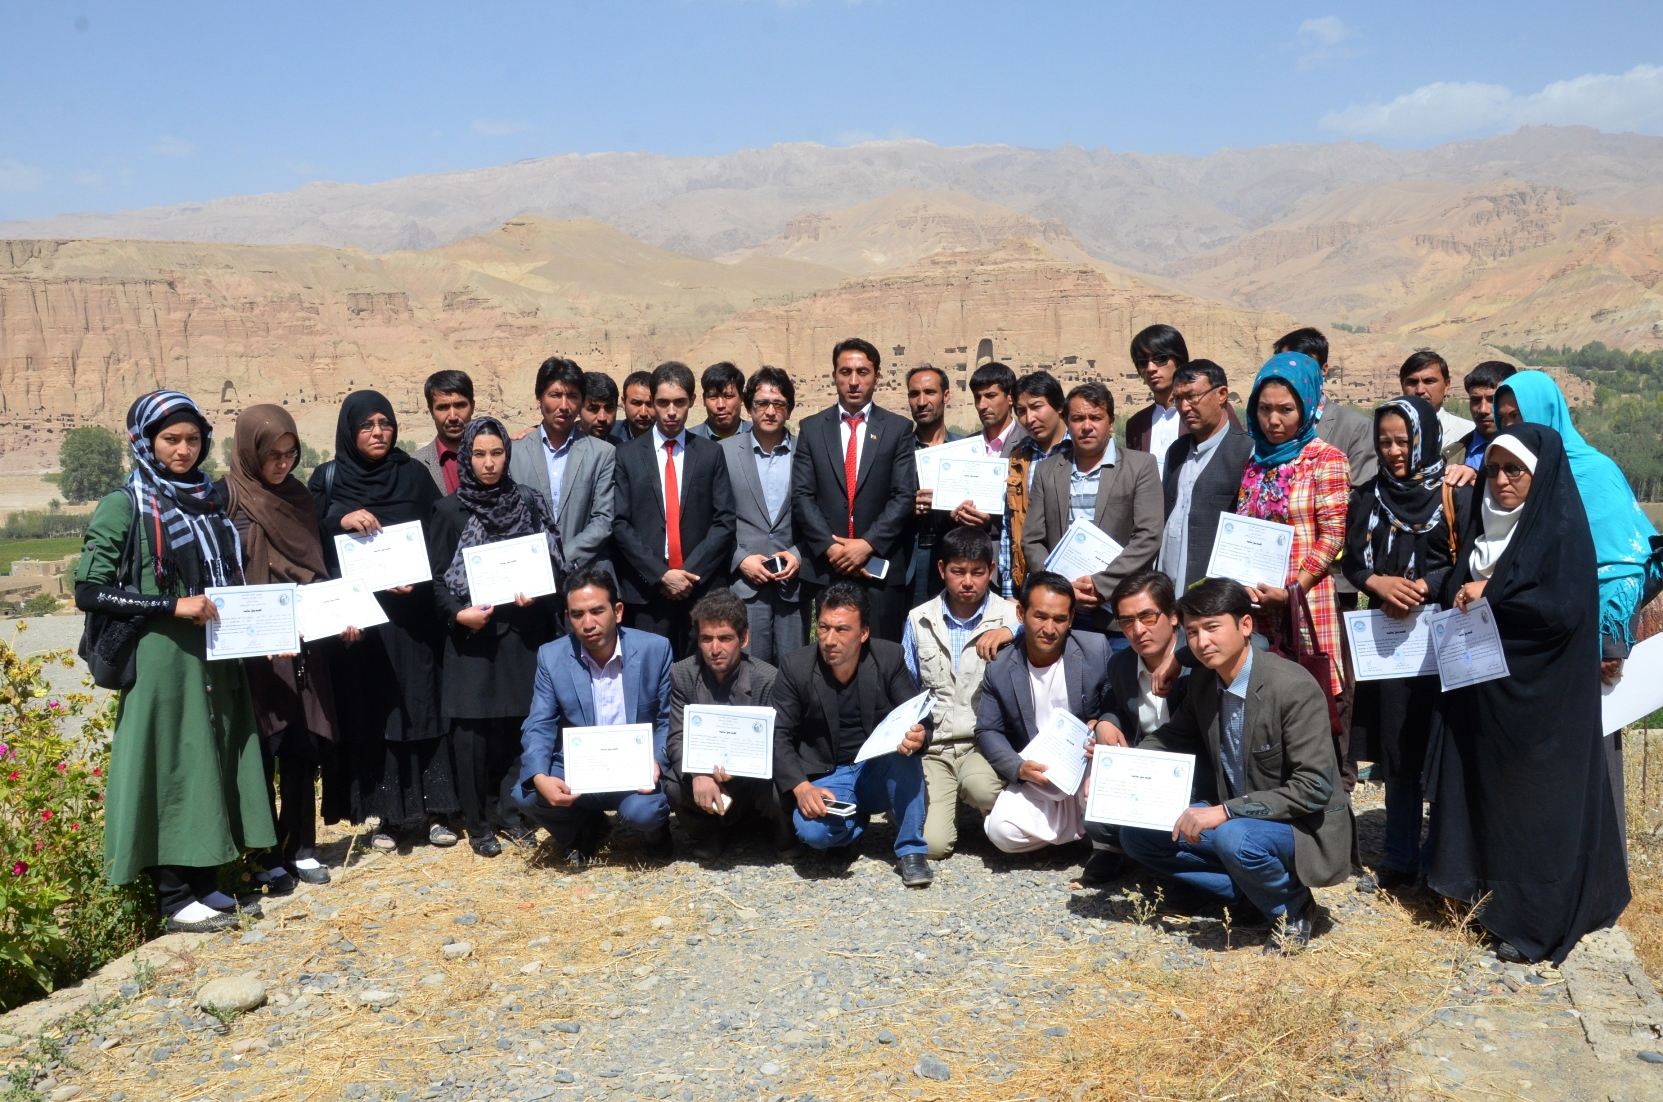 Hamidullah Arefi, secretary South Asia Foundation-Afghanistan distributing certificates on cultural heritage in Bamyan